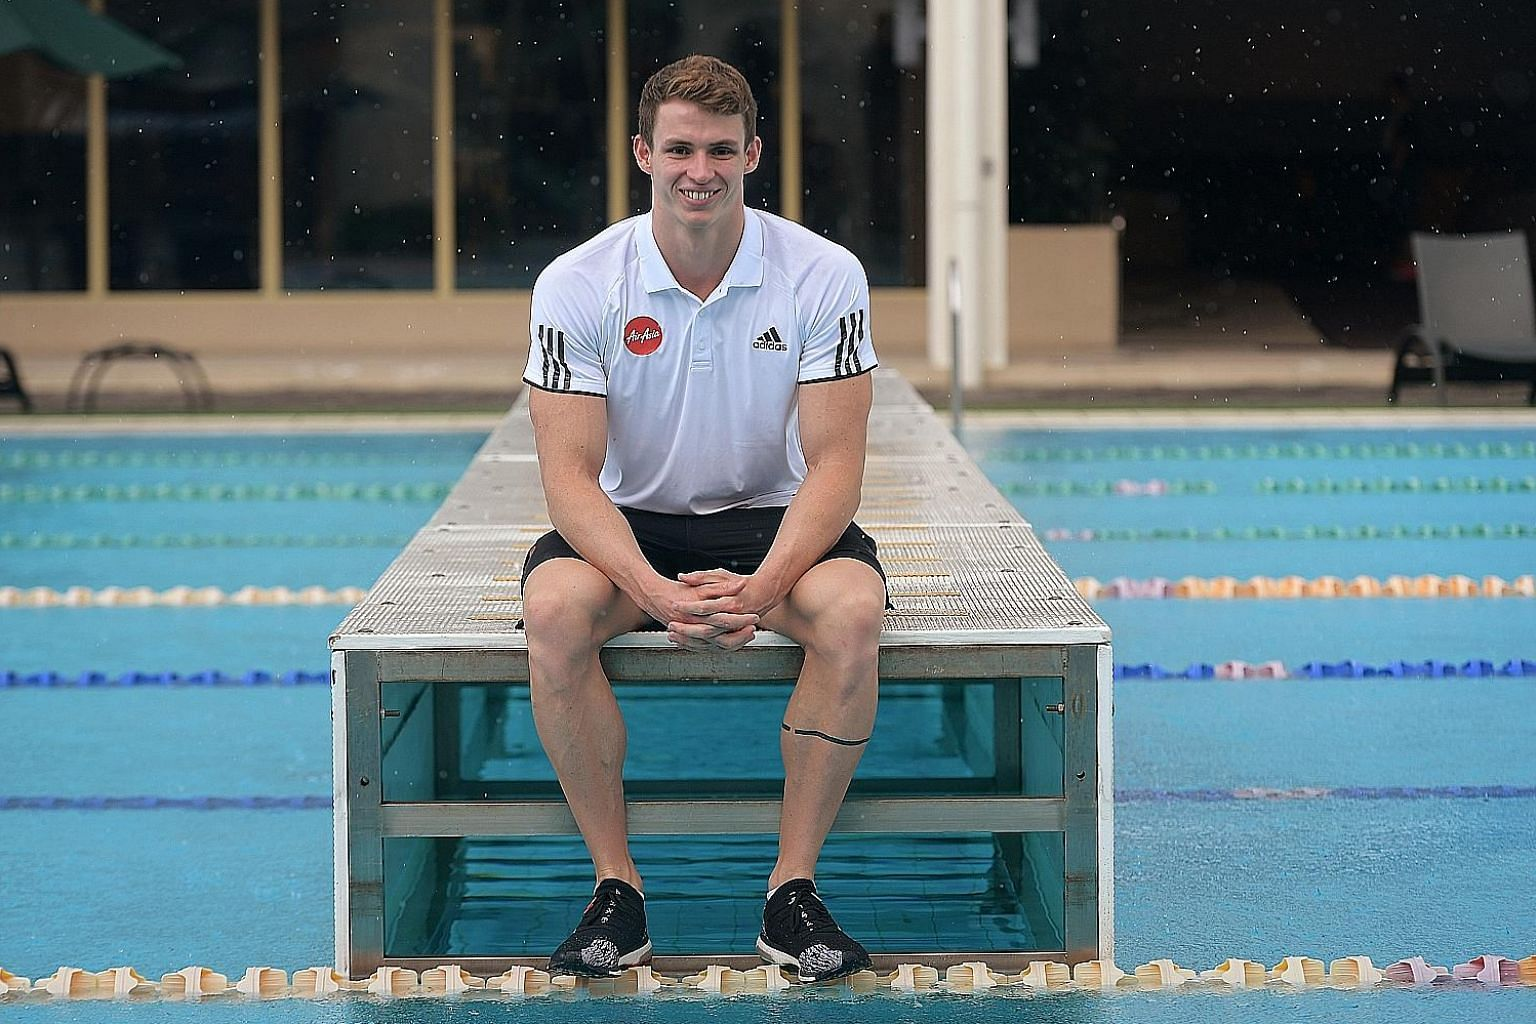 English swimmer Ben Proud is in town as an ambassador for AirAsia. He is the two-time Commonwealth Games 50m freestyle champion and is aiming for gold at Tokyo 2020.